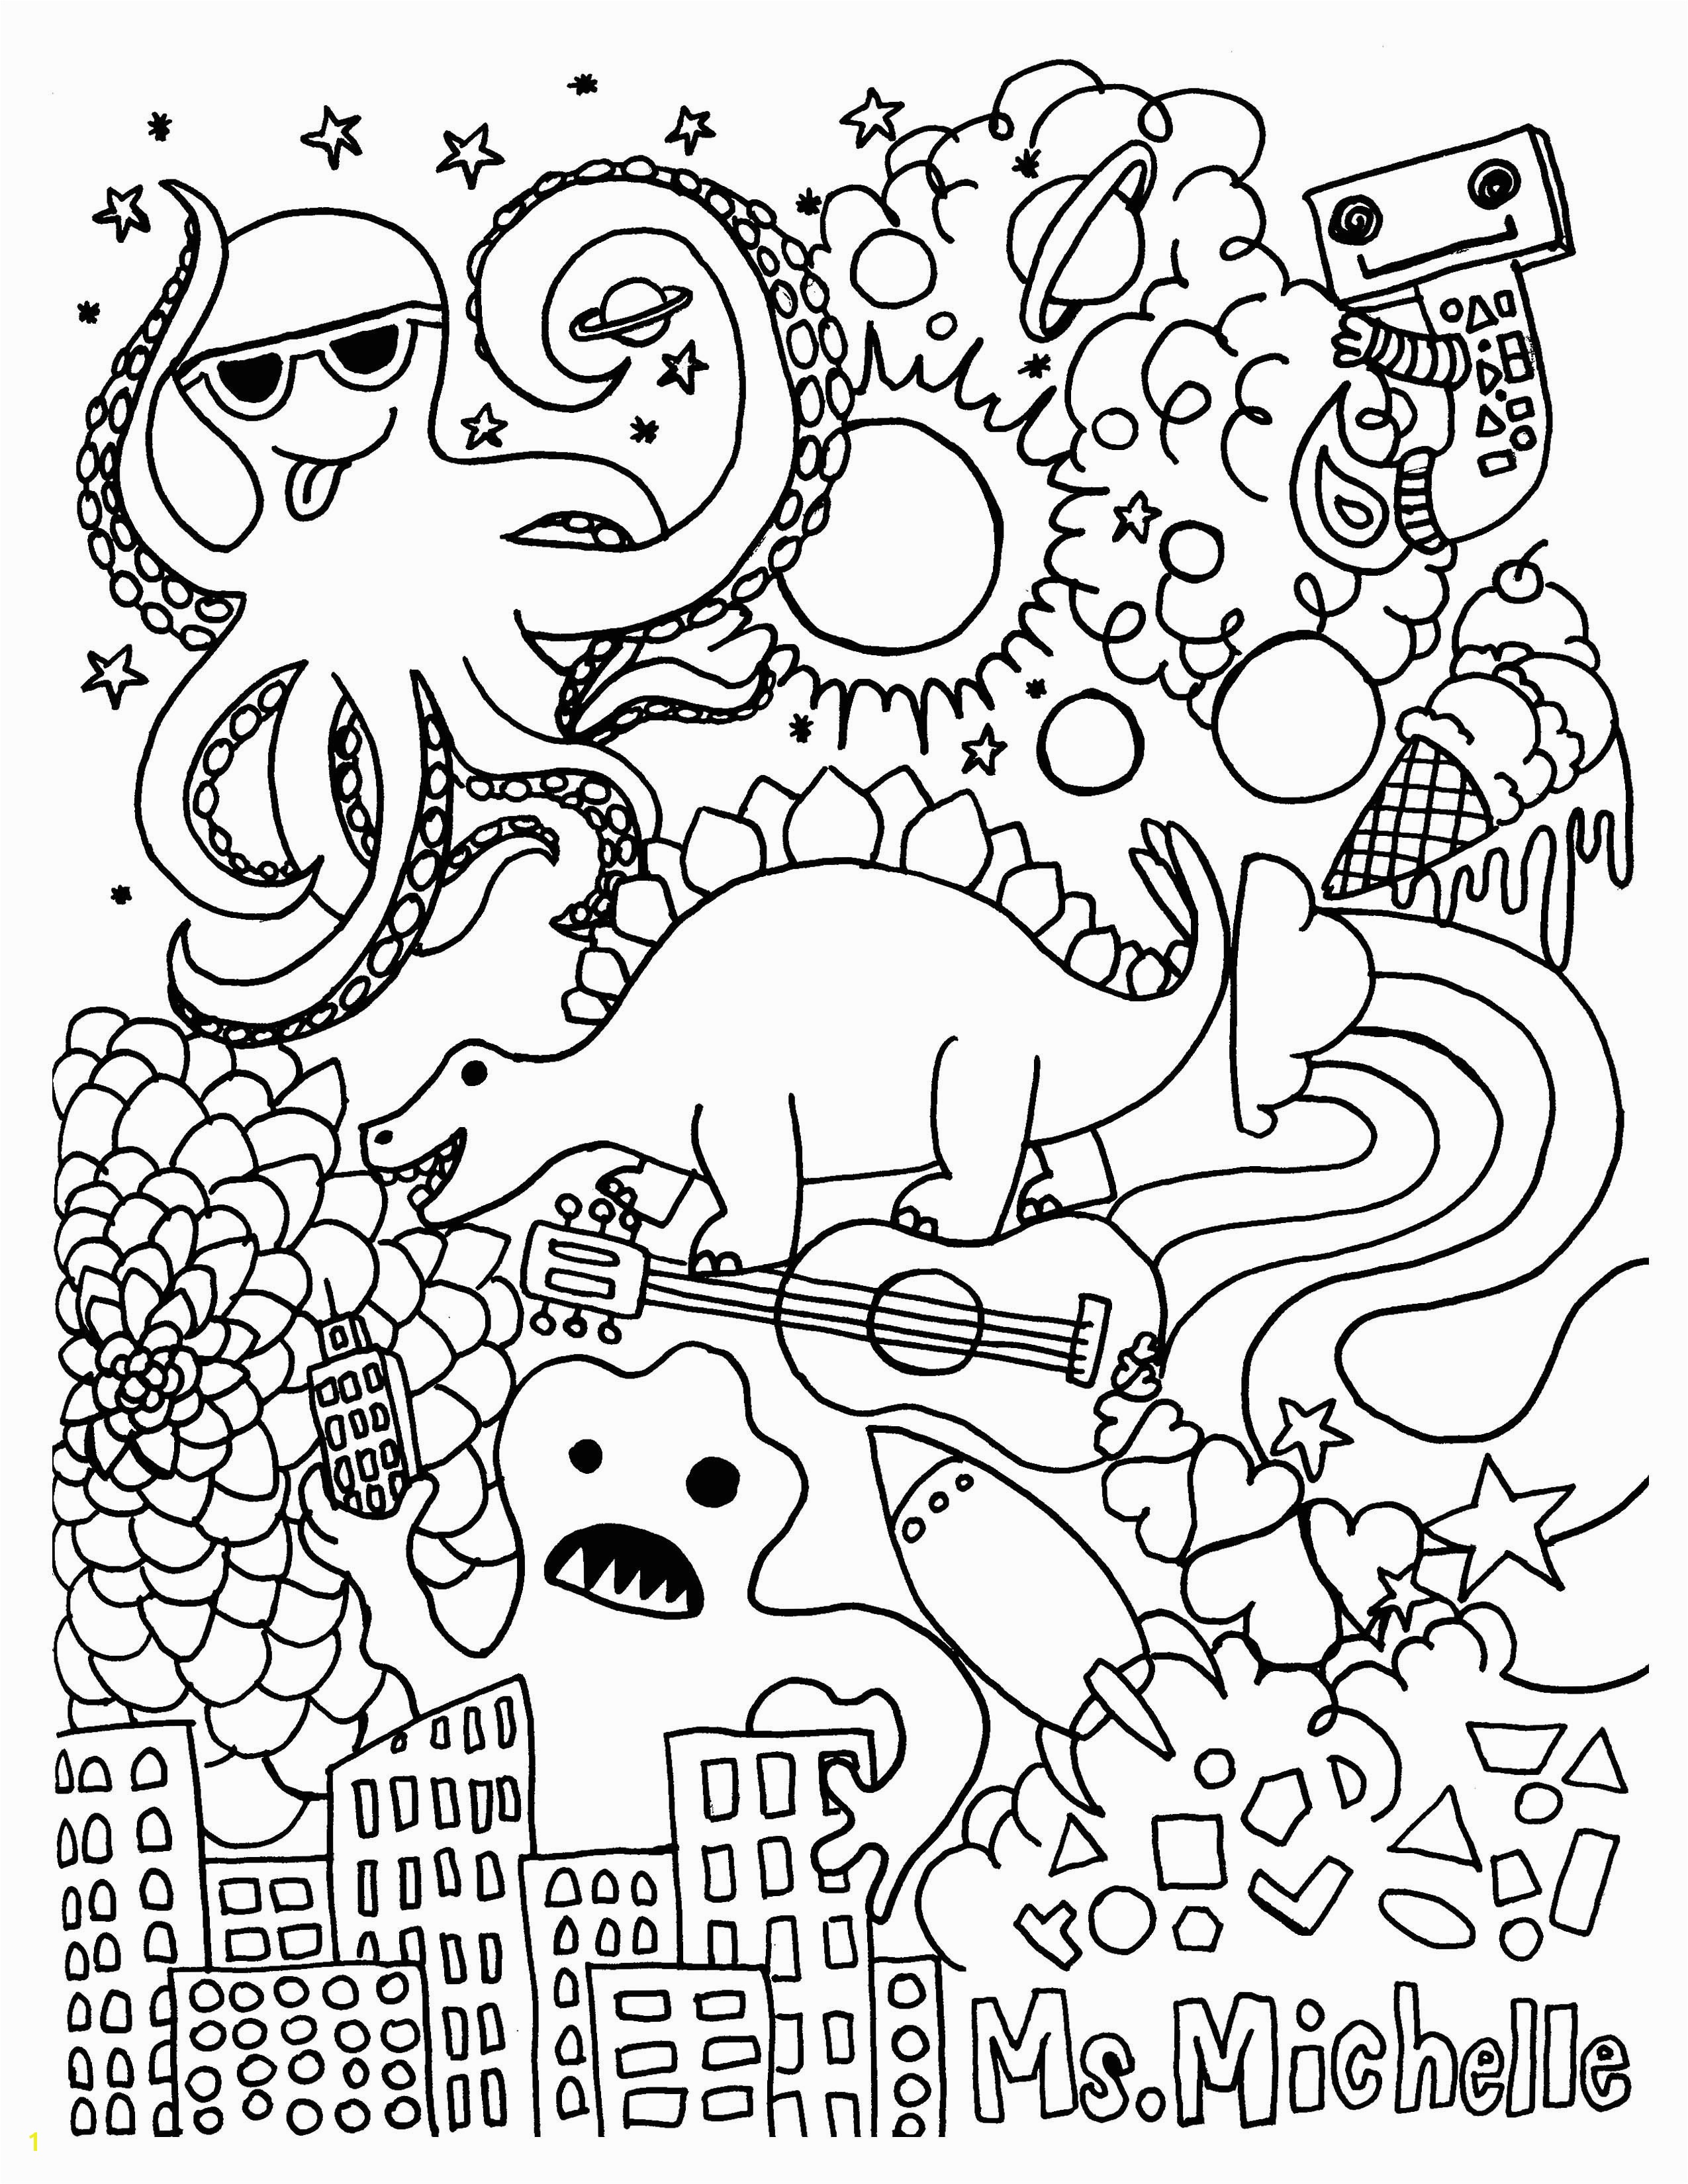 e Direction Coloring Pages Unique 18cute First Grade Coloring Sheets Clip Arts & Coloring Pages